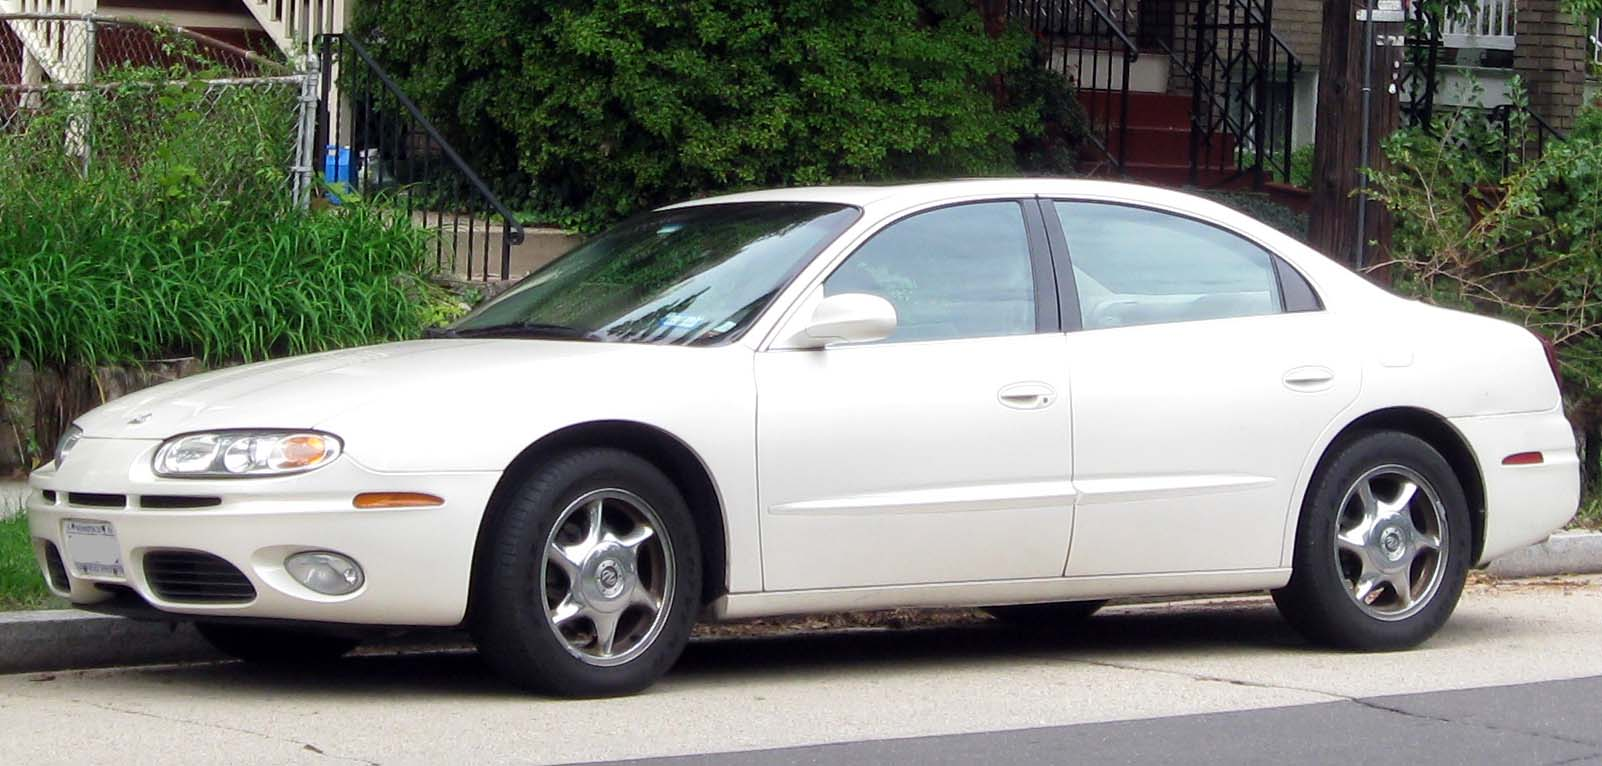 oldsmobile aurora cars news videos images websites wiki oldsmobile aurora images